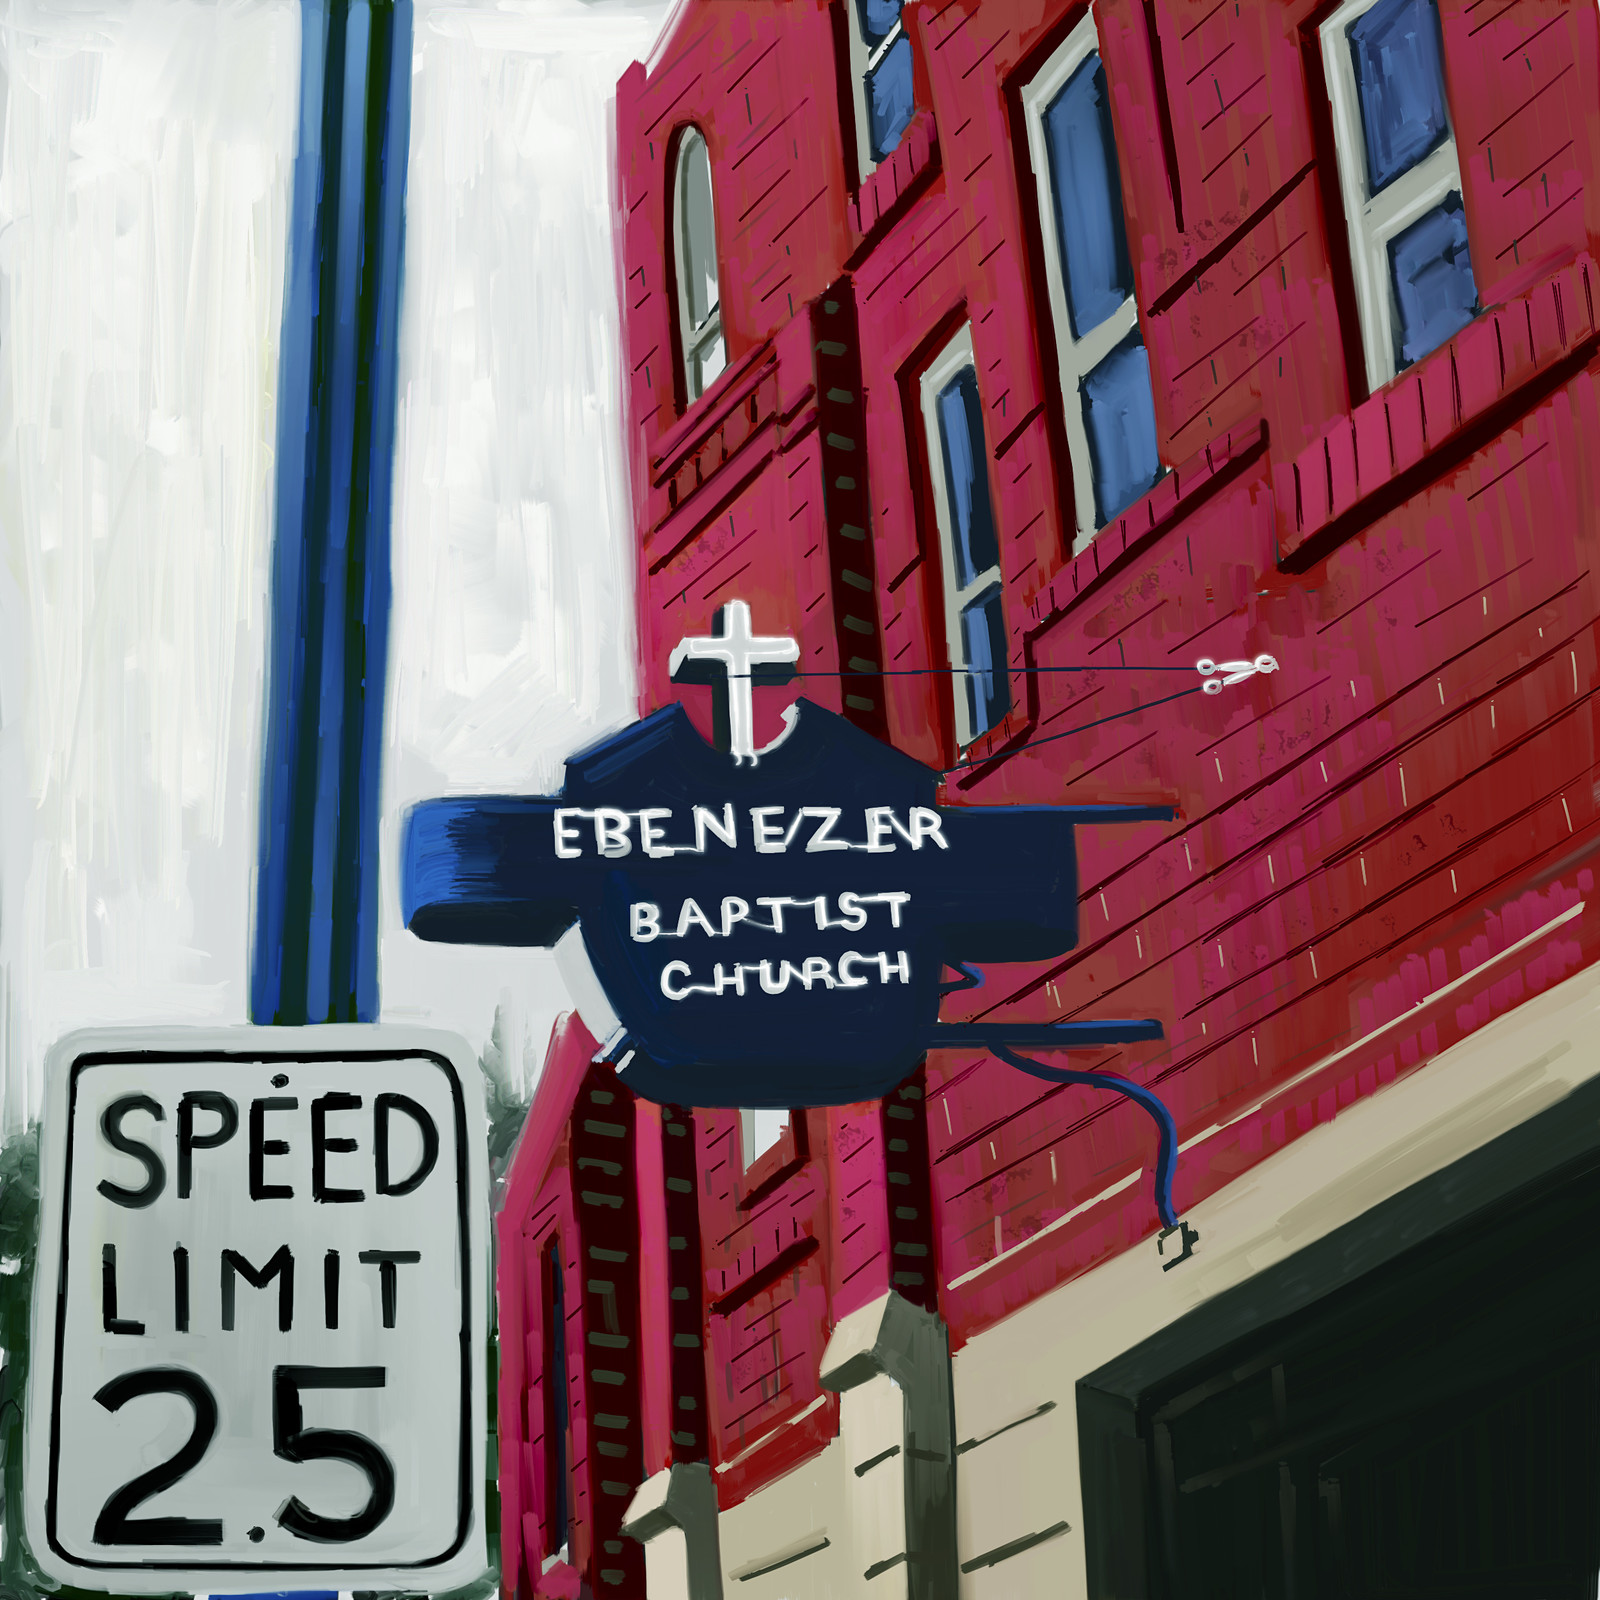 Ebenezer Baptist church, ATL, GA